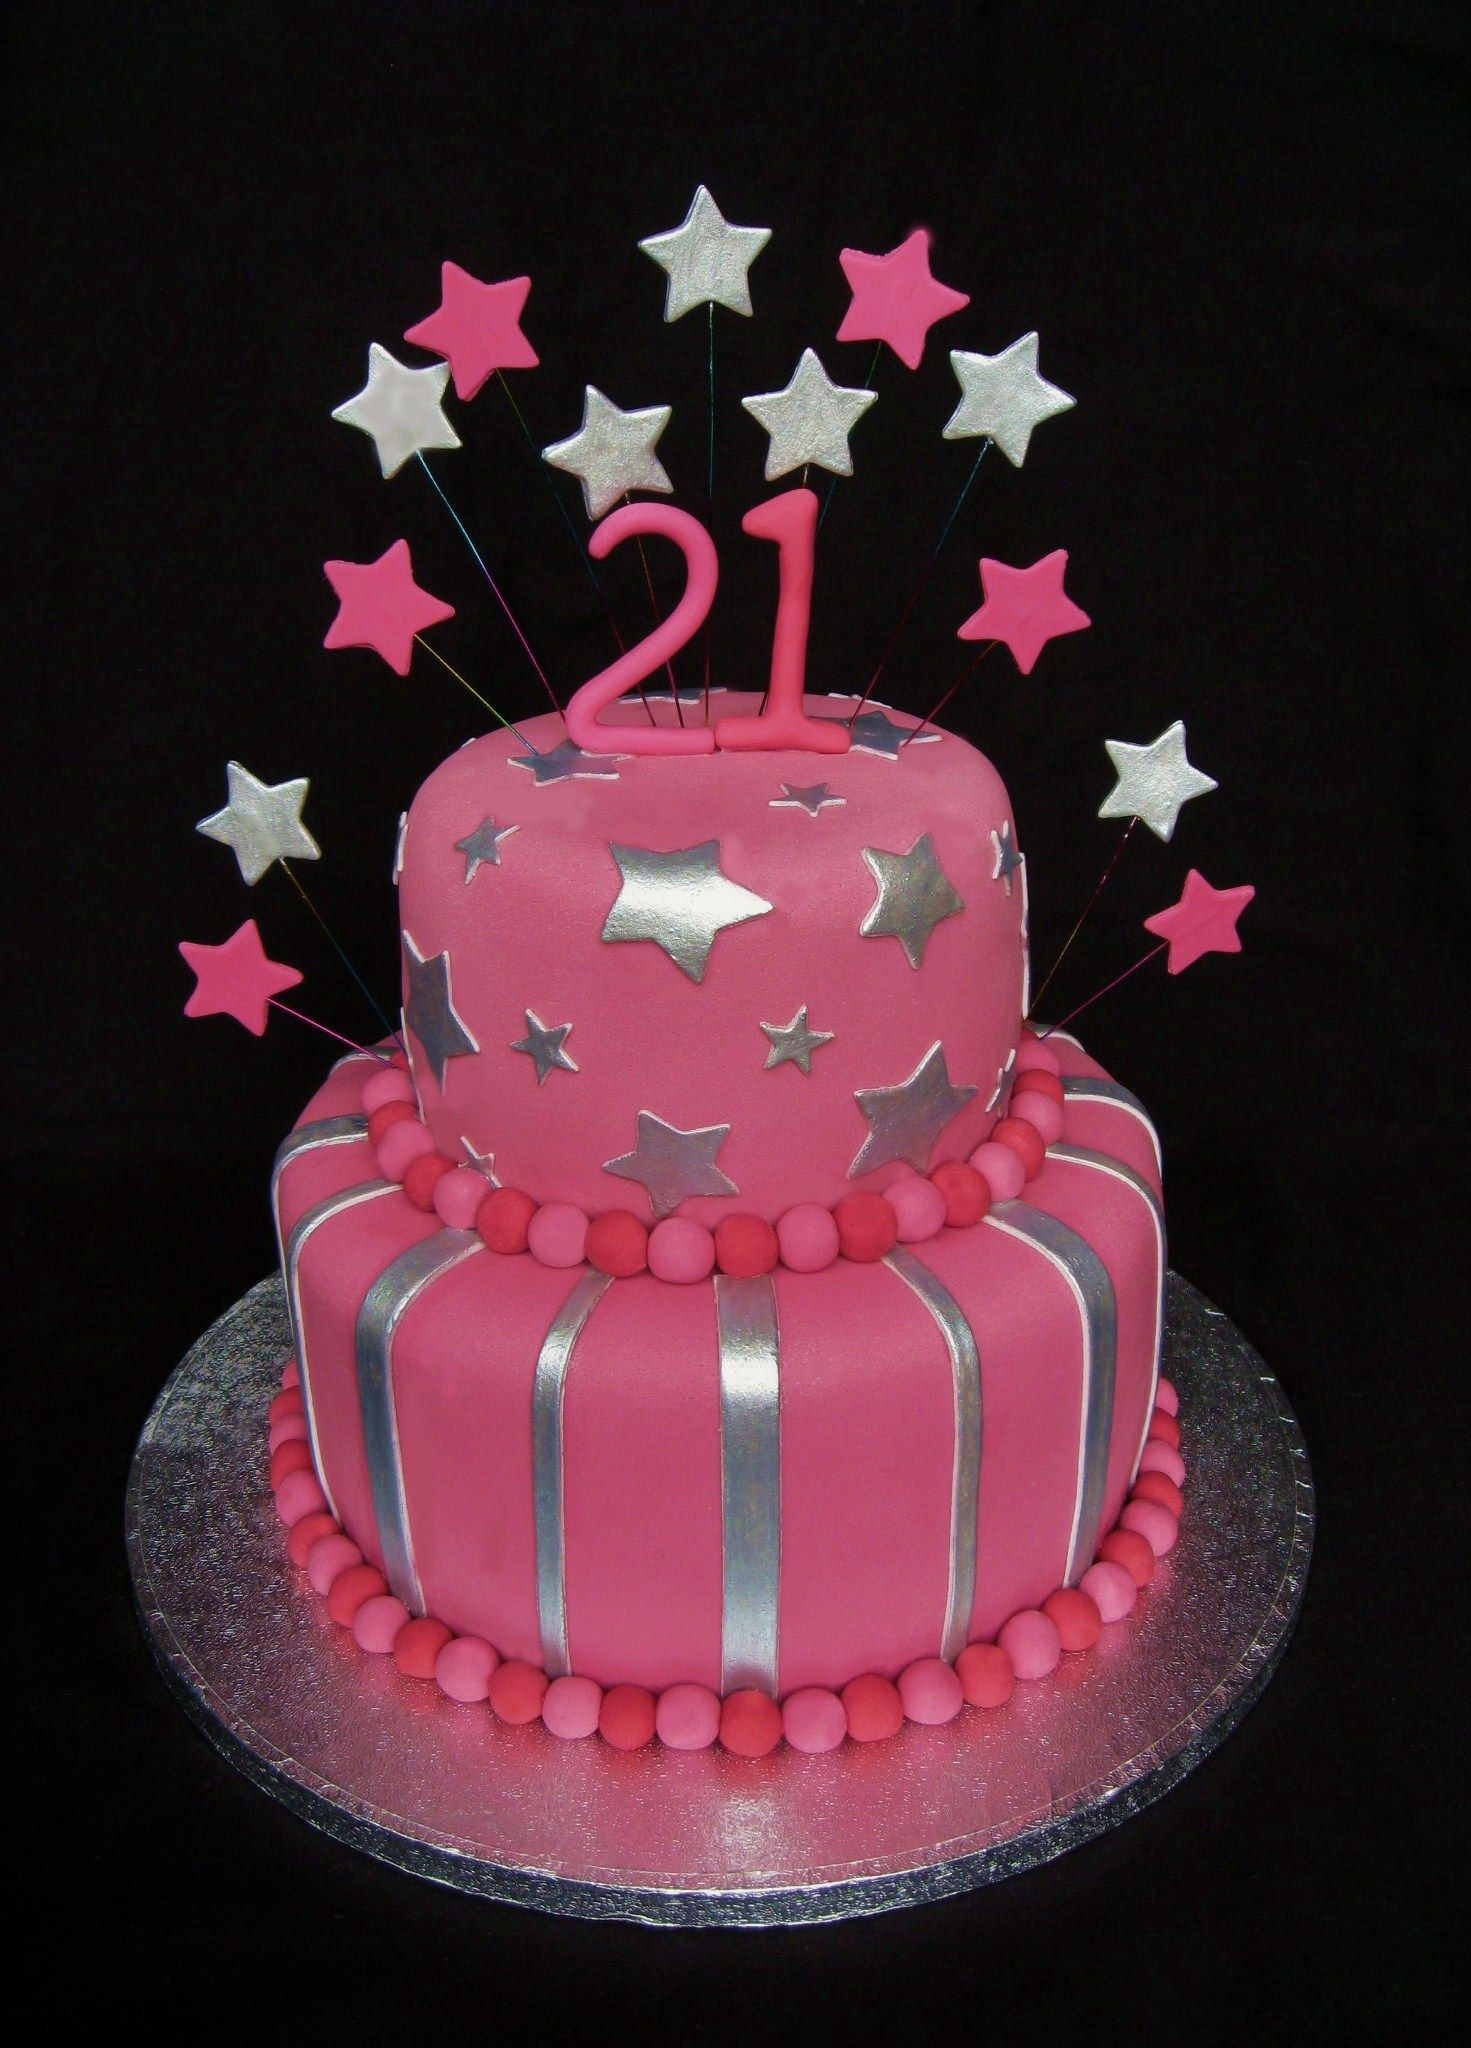 Marvelous 21St Birthday Cake 21St Birthday Cakes 21St Birthday Cake For Personalised Birthday Cards Veneteletsinfo